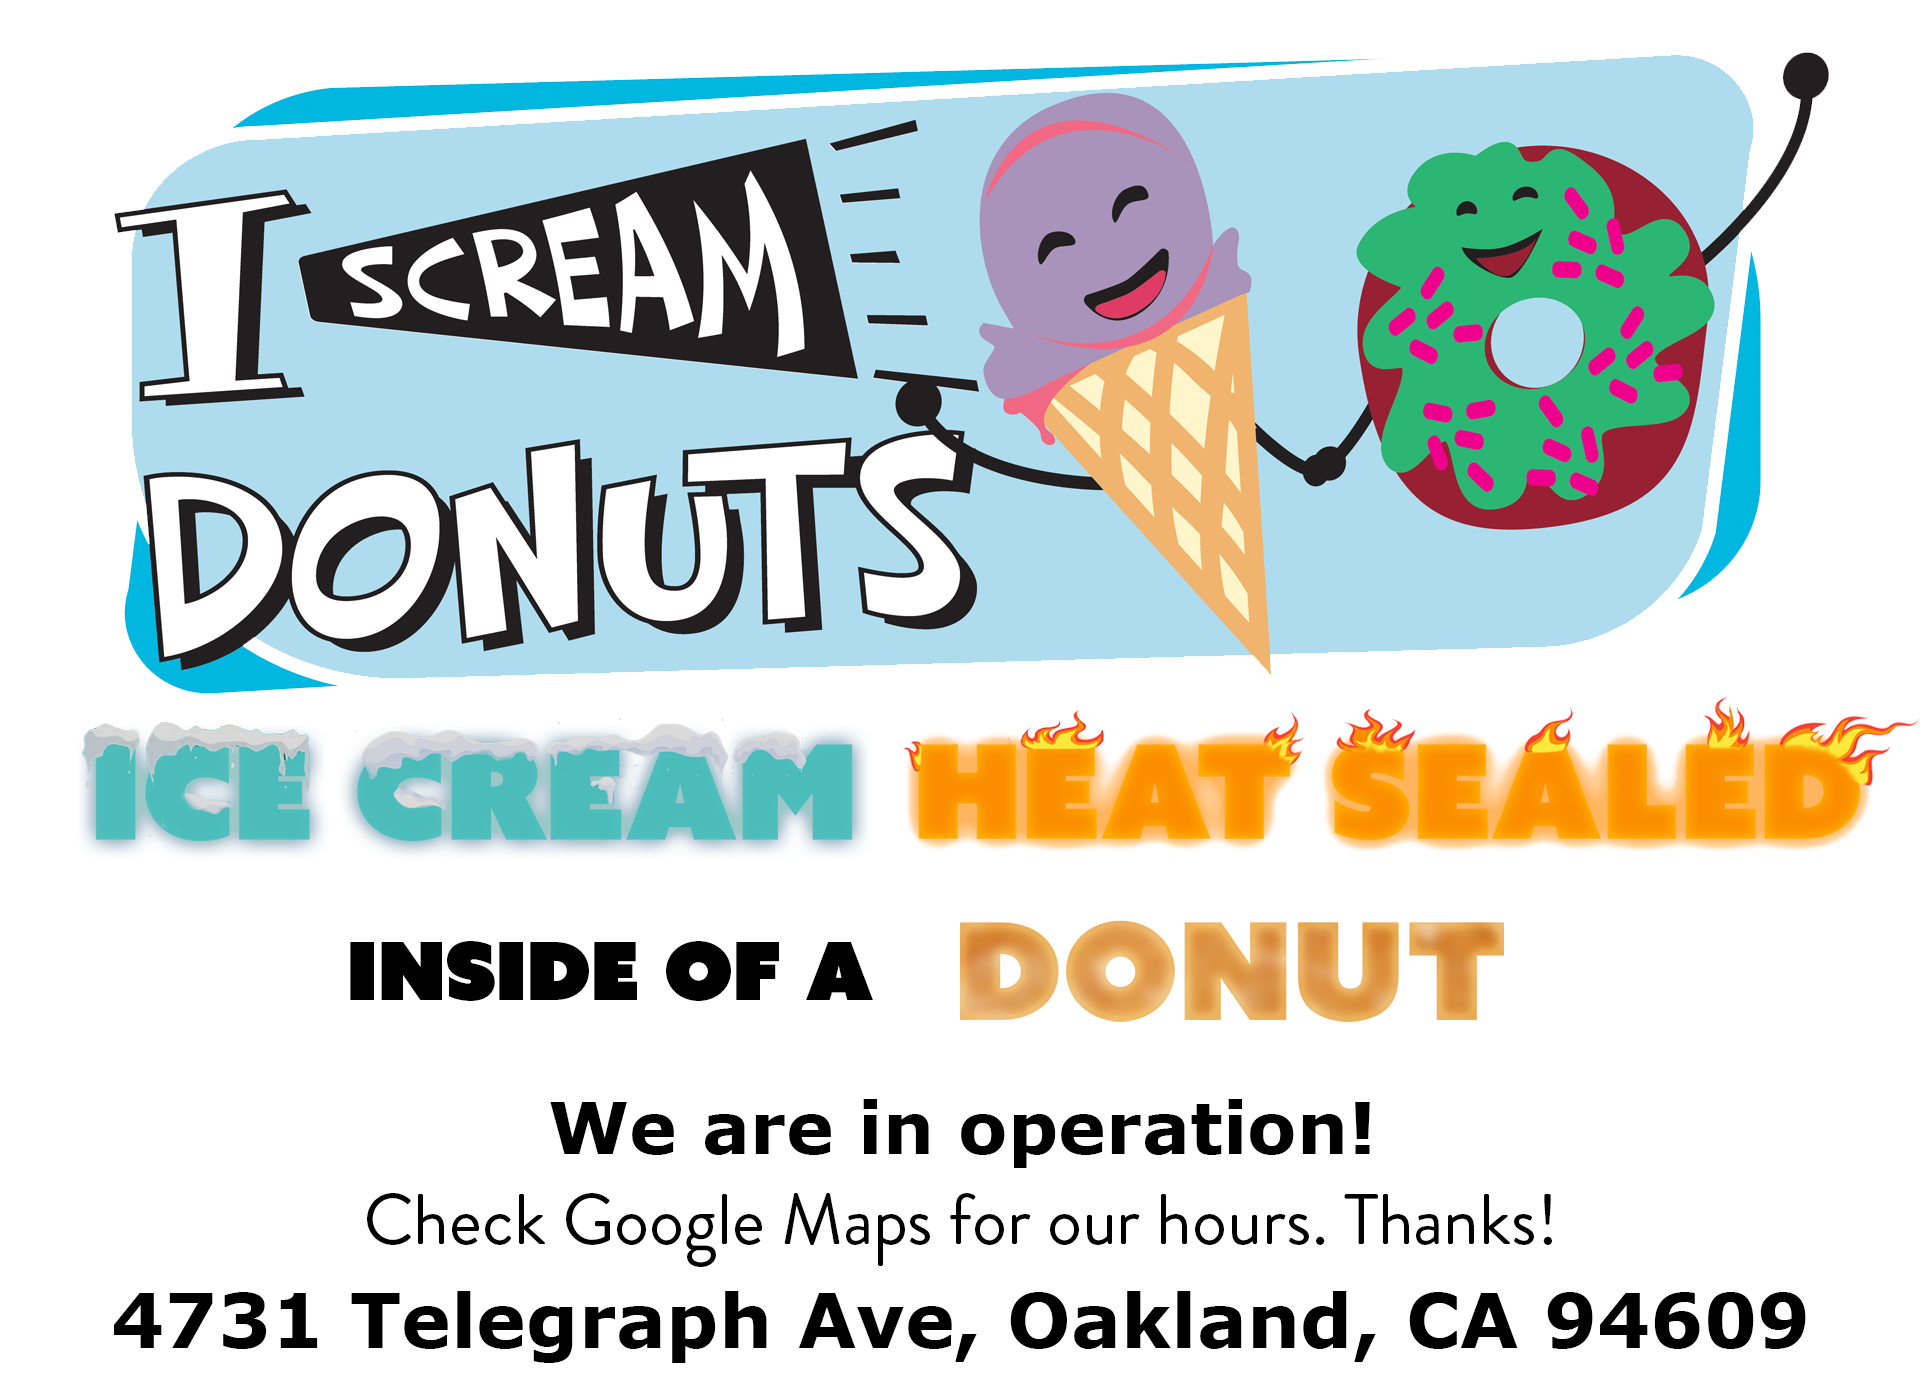 I Scream Donuts